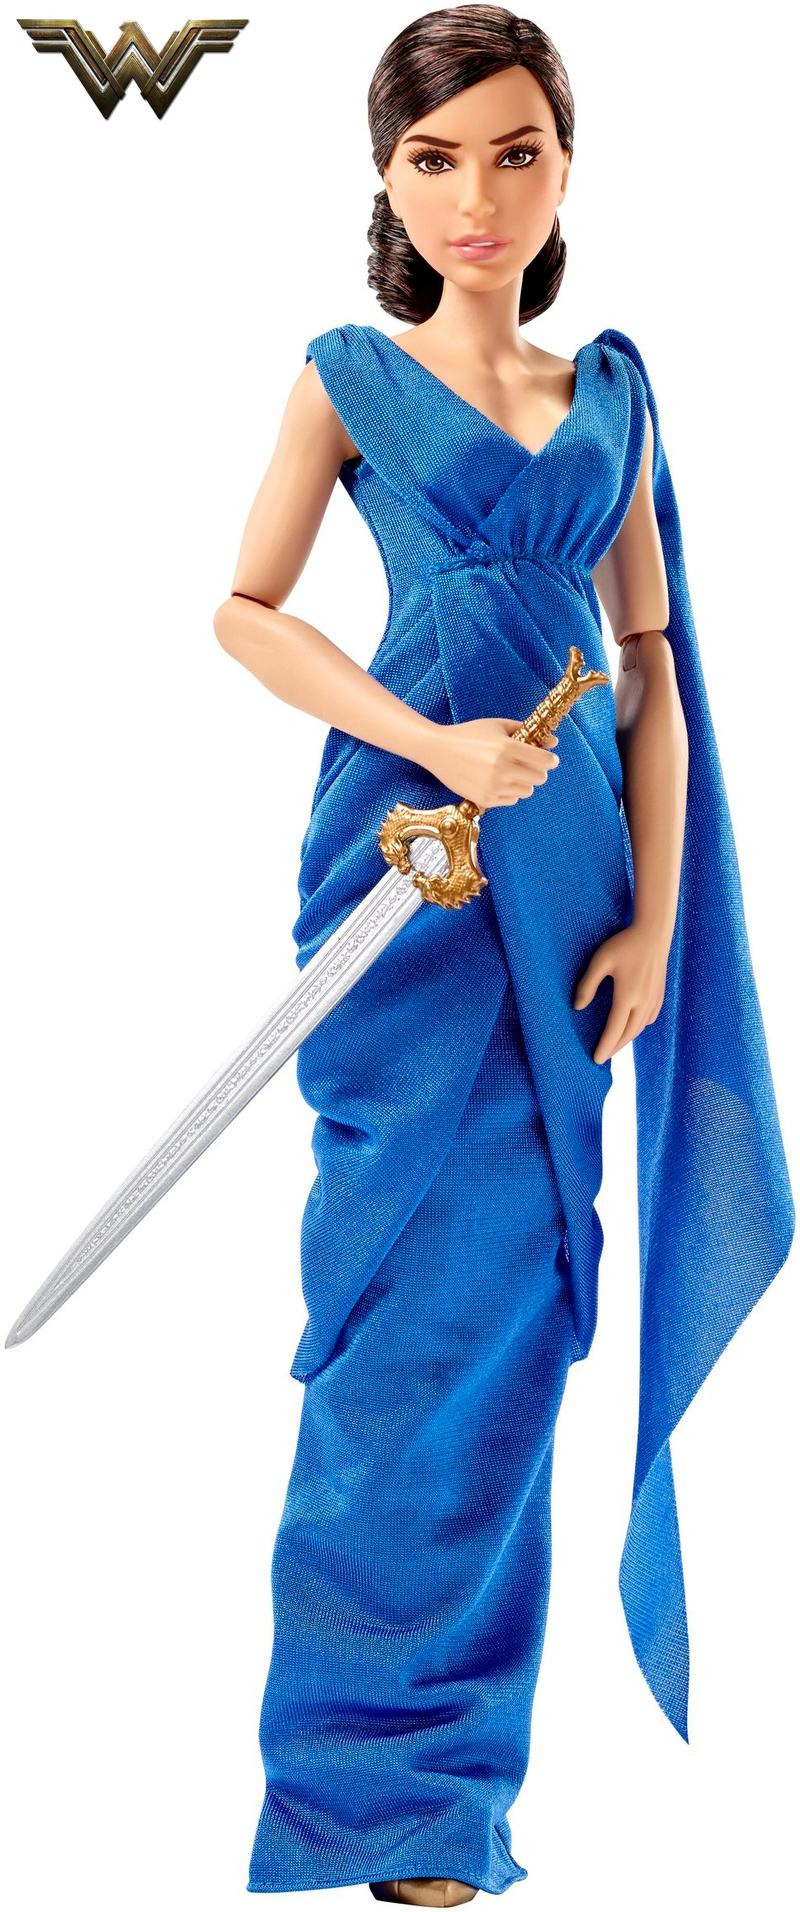 Barbie-2017-Wonder-Woman-Movie-Figures-03